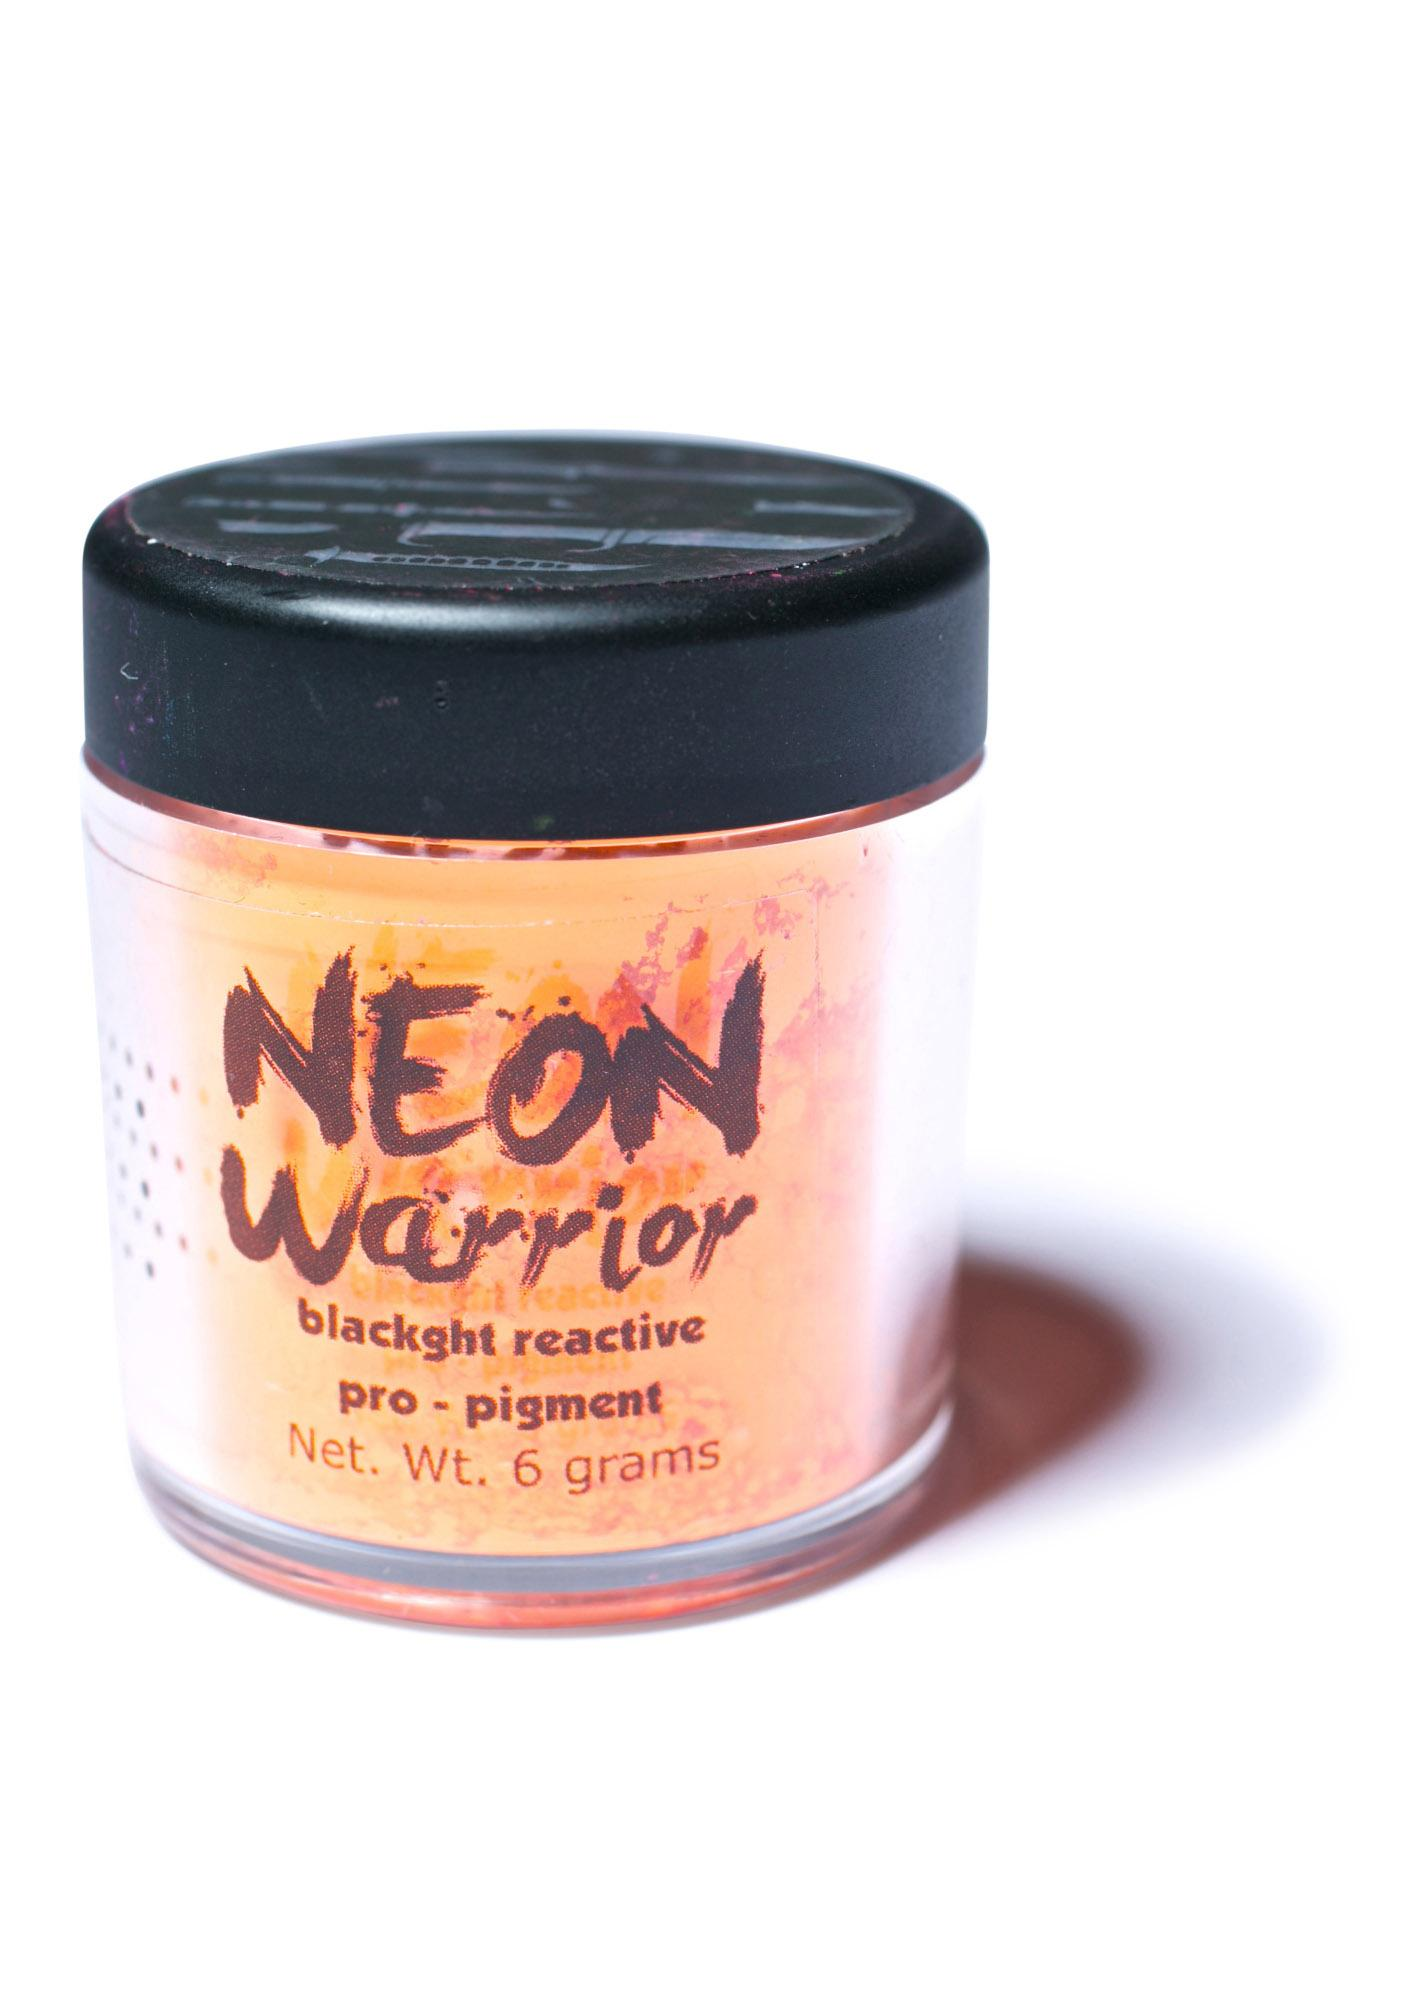 Medusa's Makeup Neon Warrior FLO